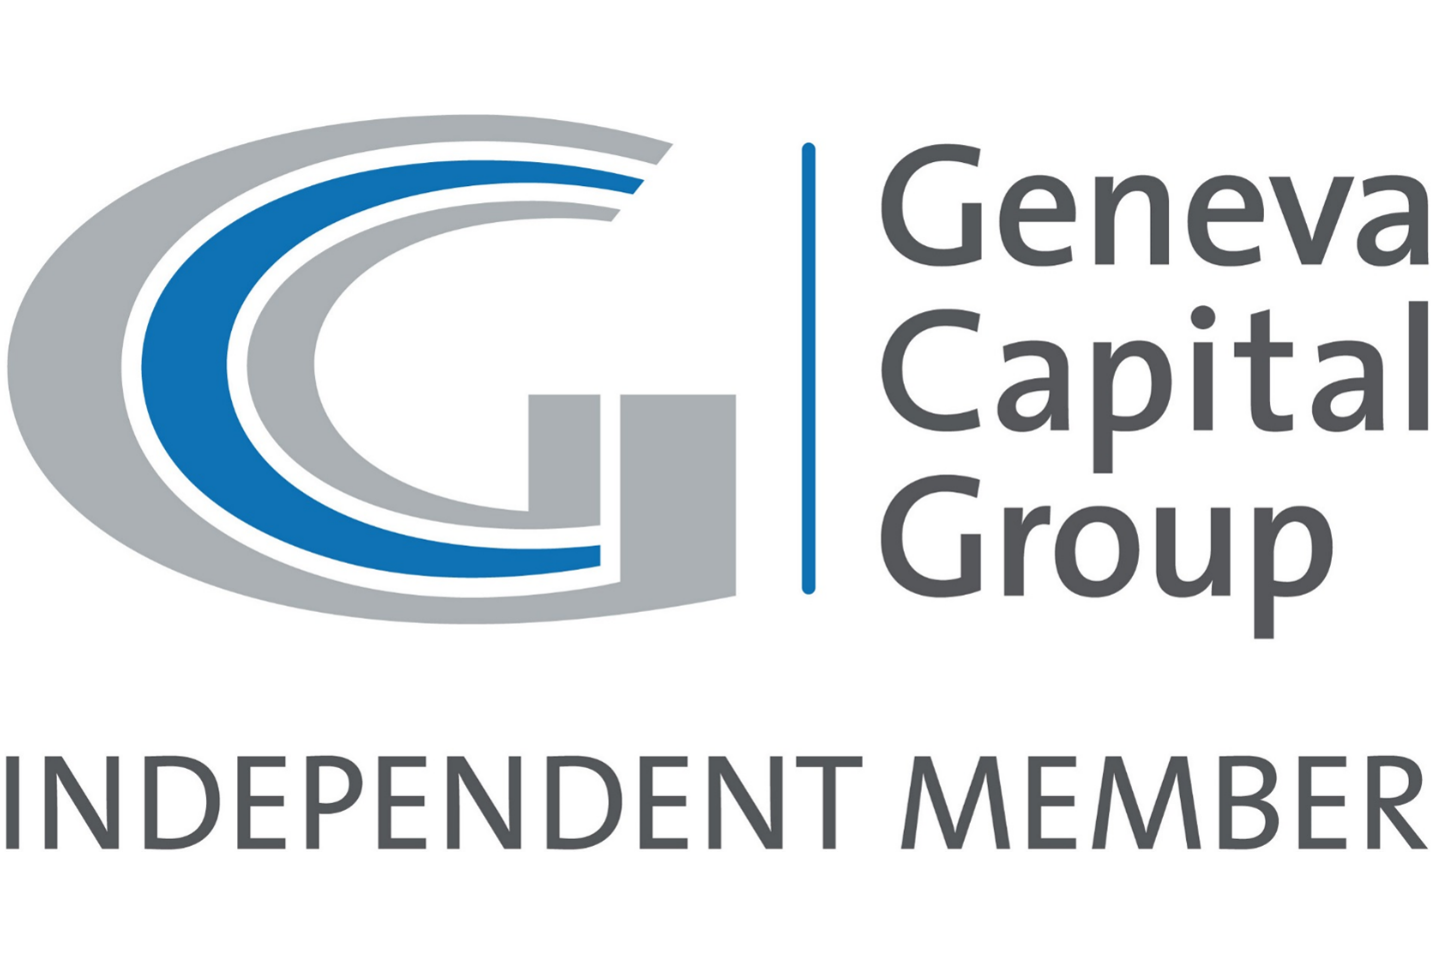 GCG-Independent-member.png